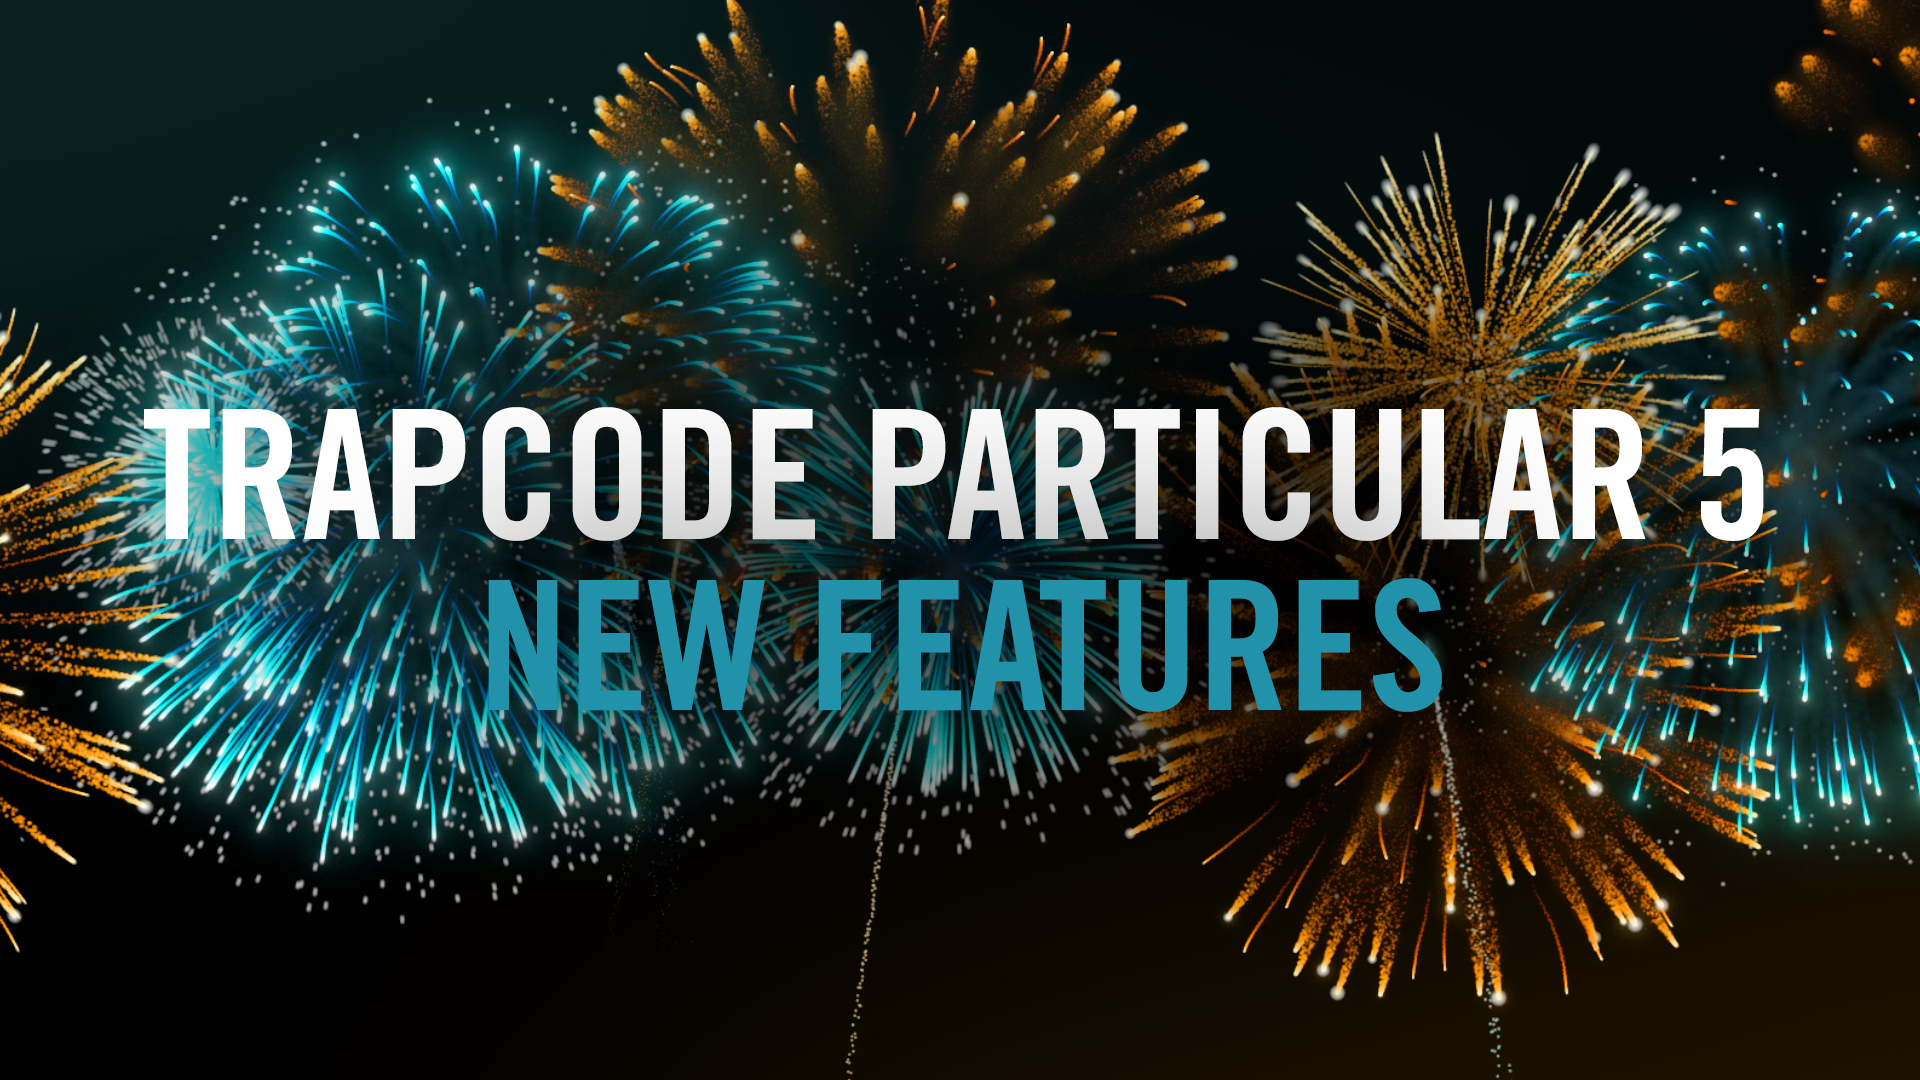 Trapcode Particular 5- New Features